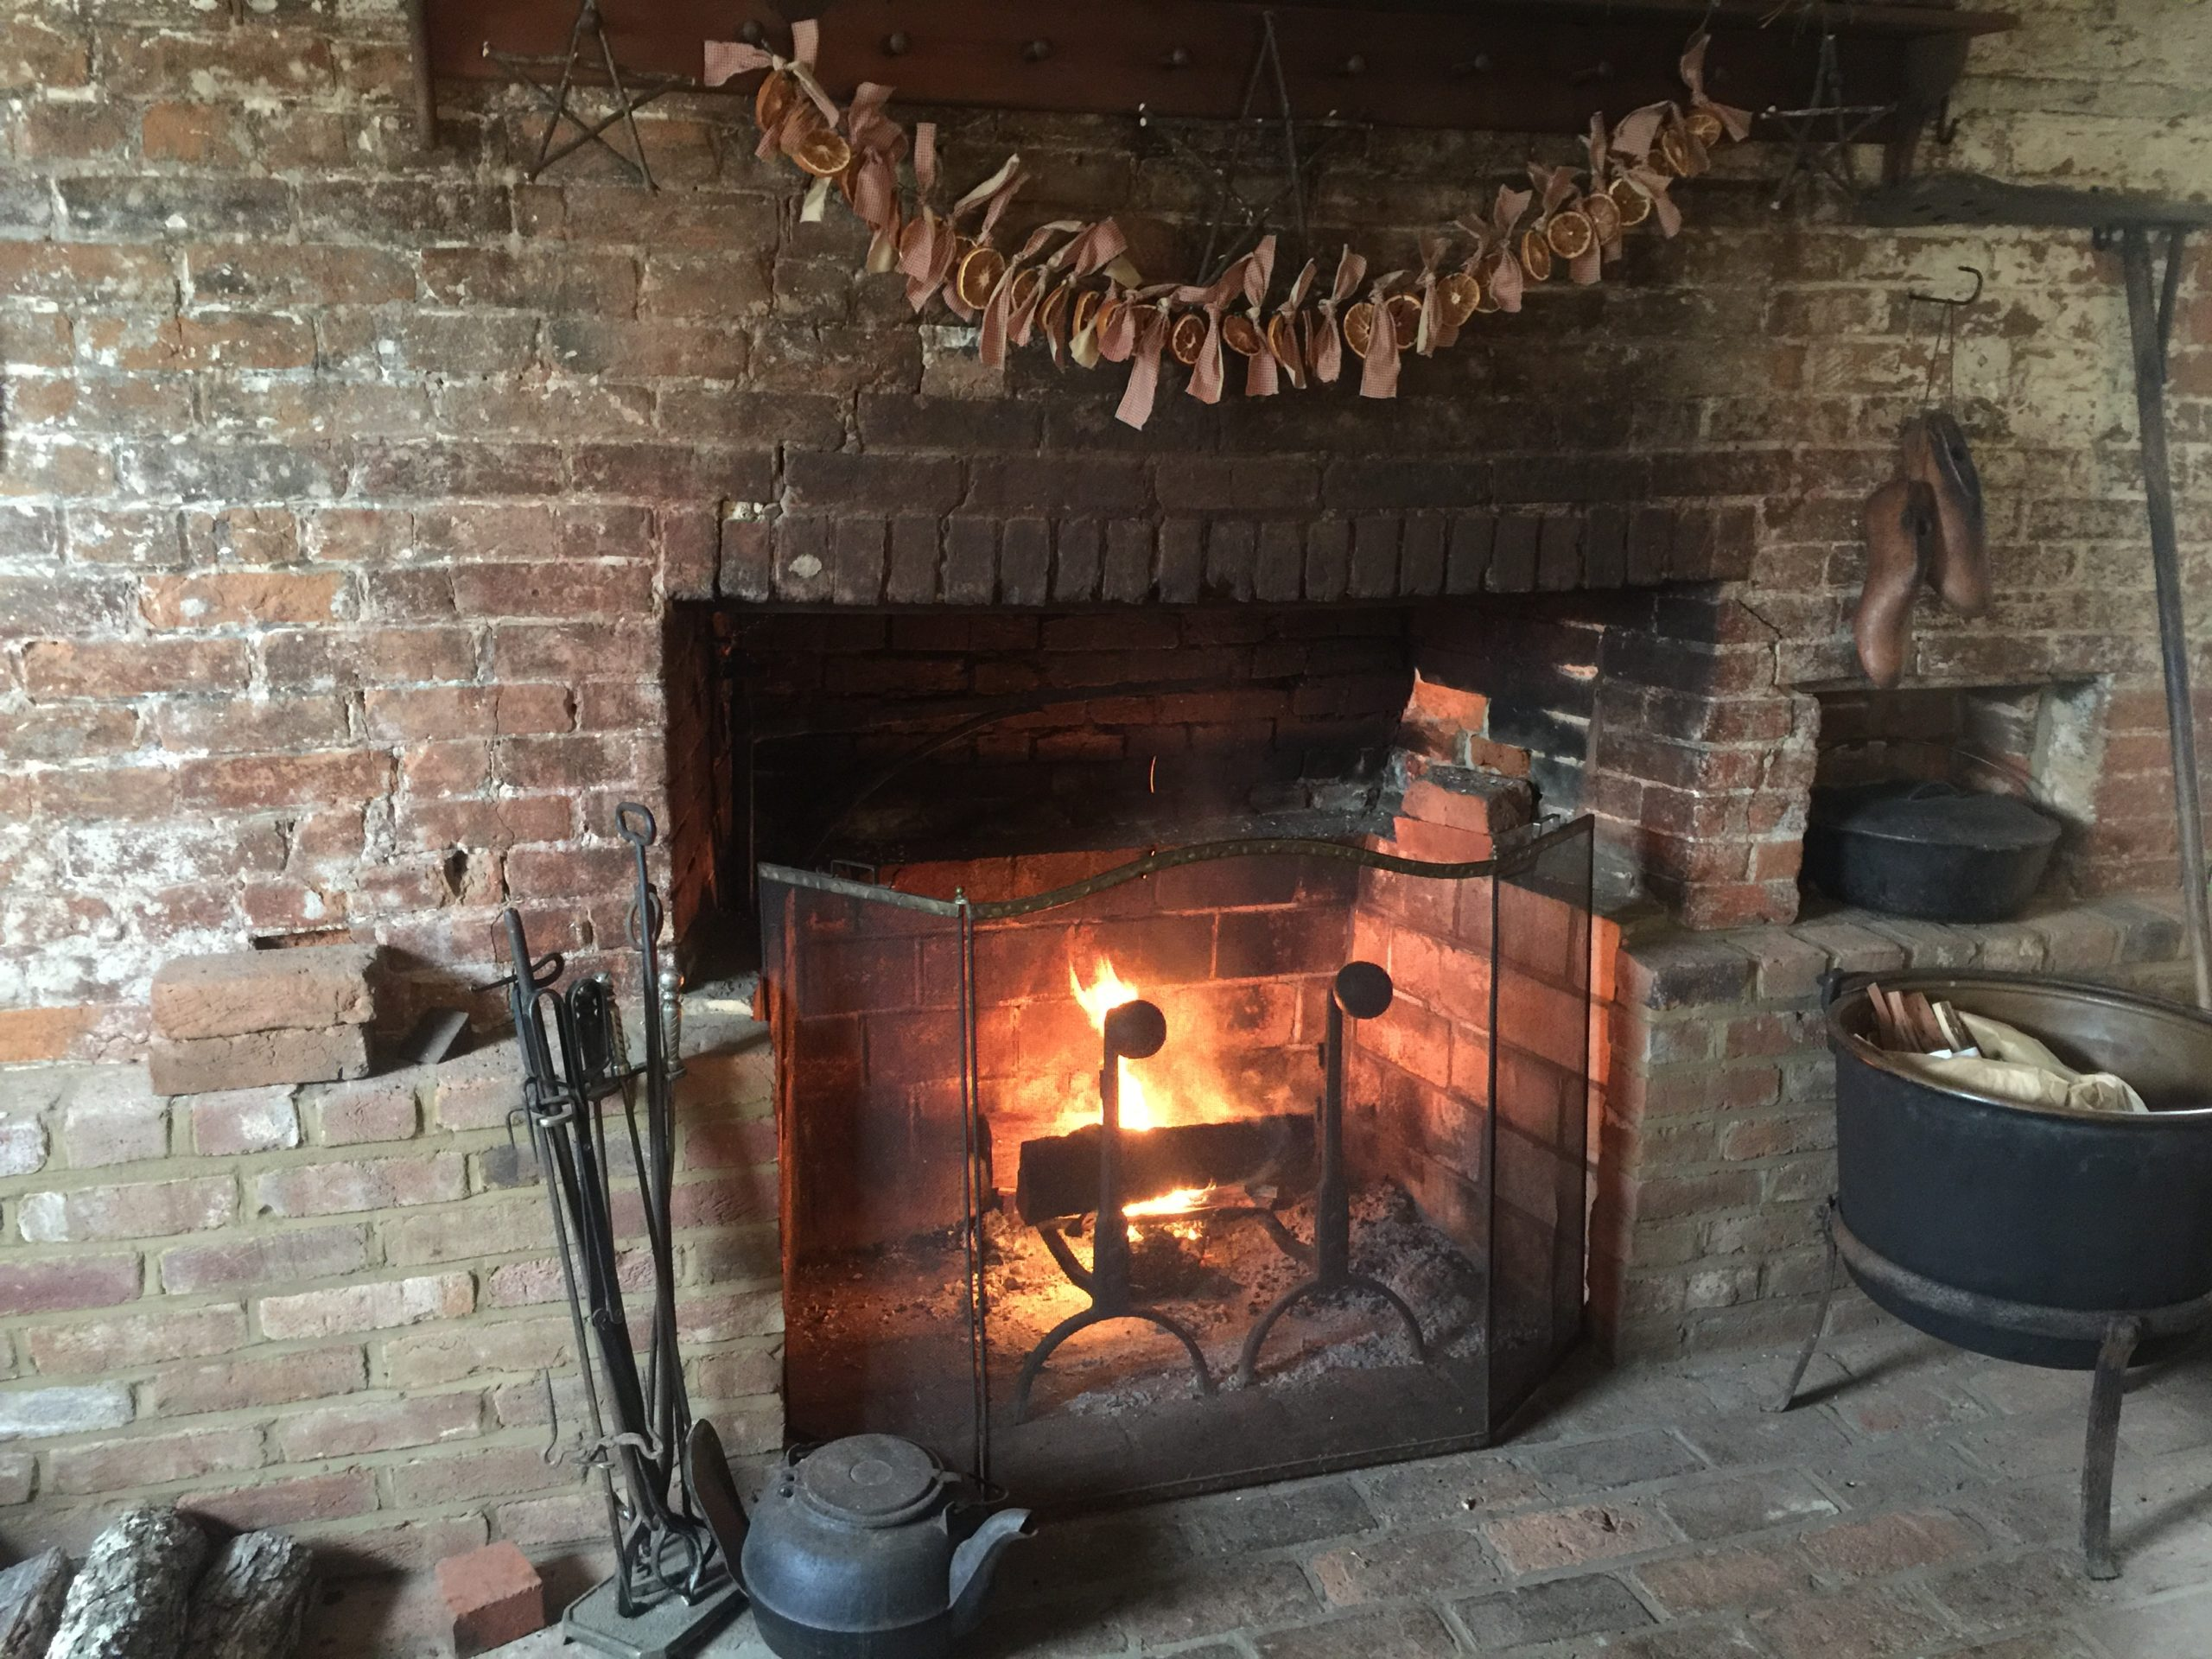 The antique fireplace at the Old Caledonian B&B